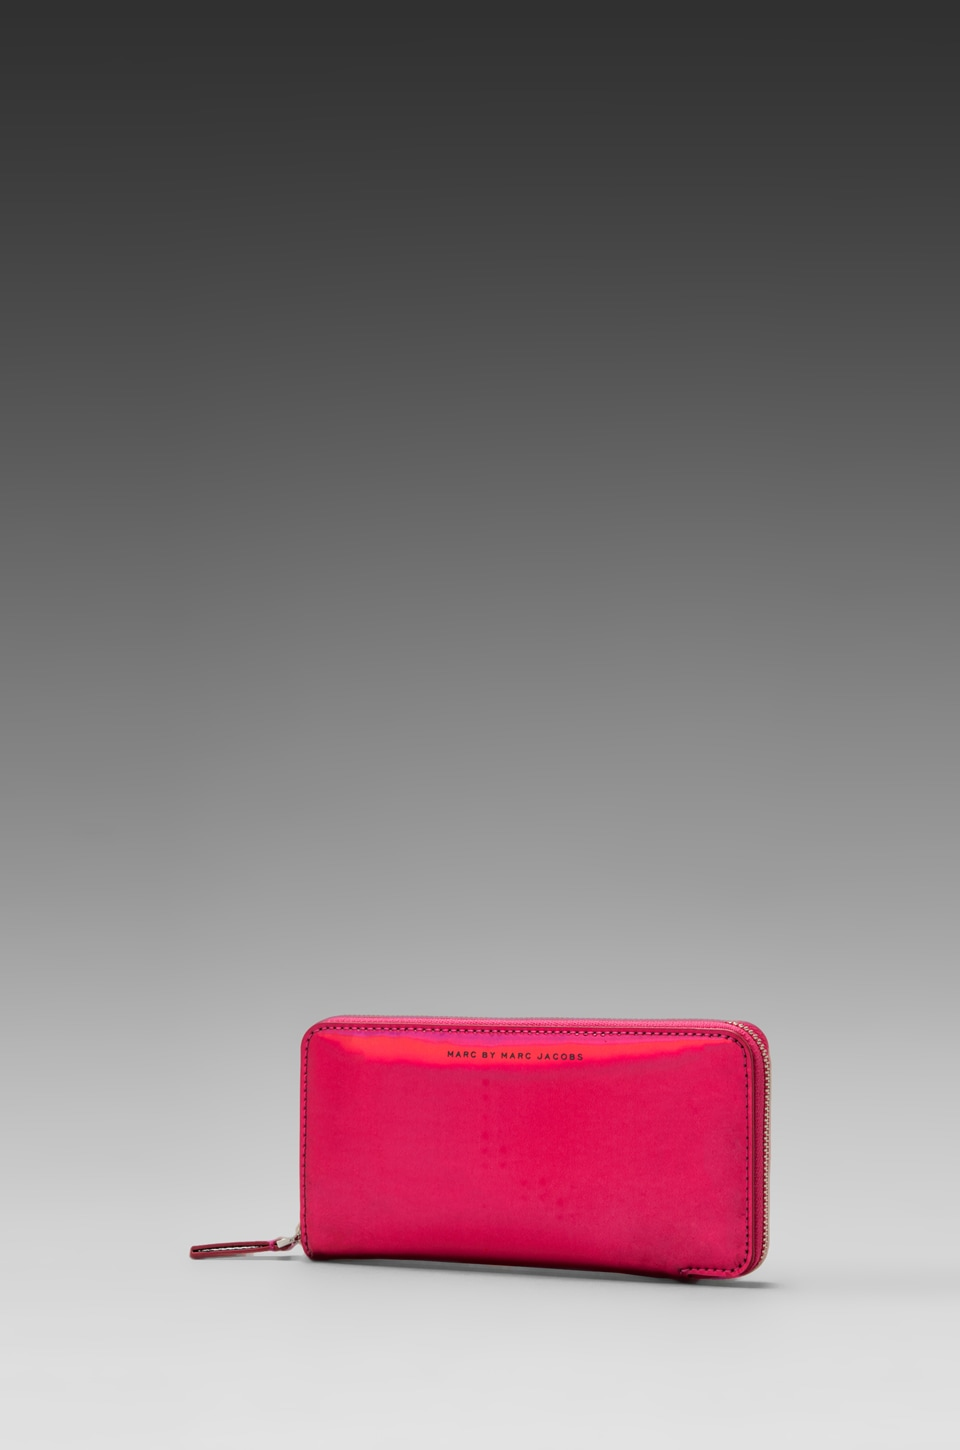 Marc by Marc Jacobs Techno Slim Zippy in Rose Holographic